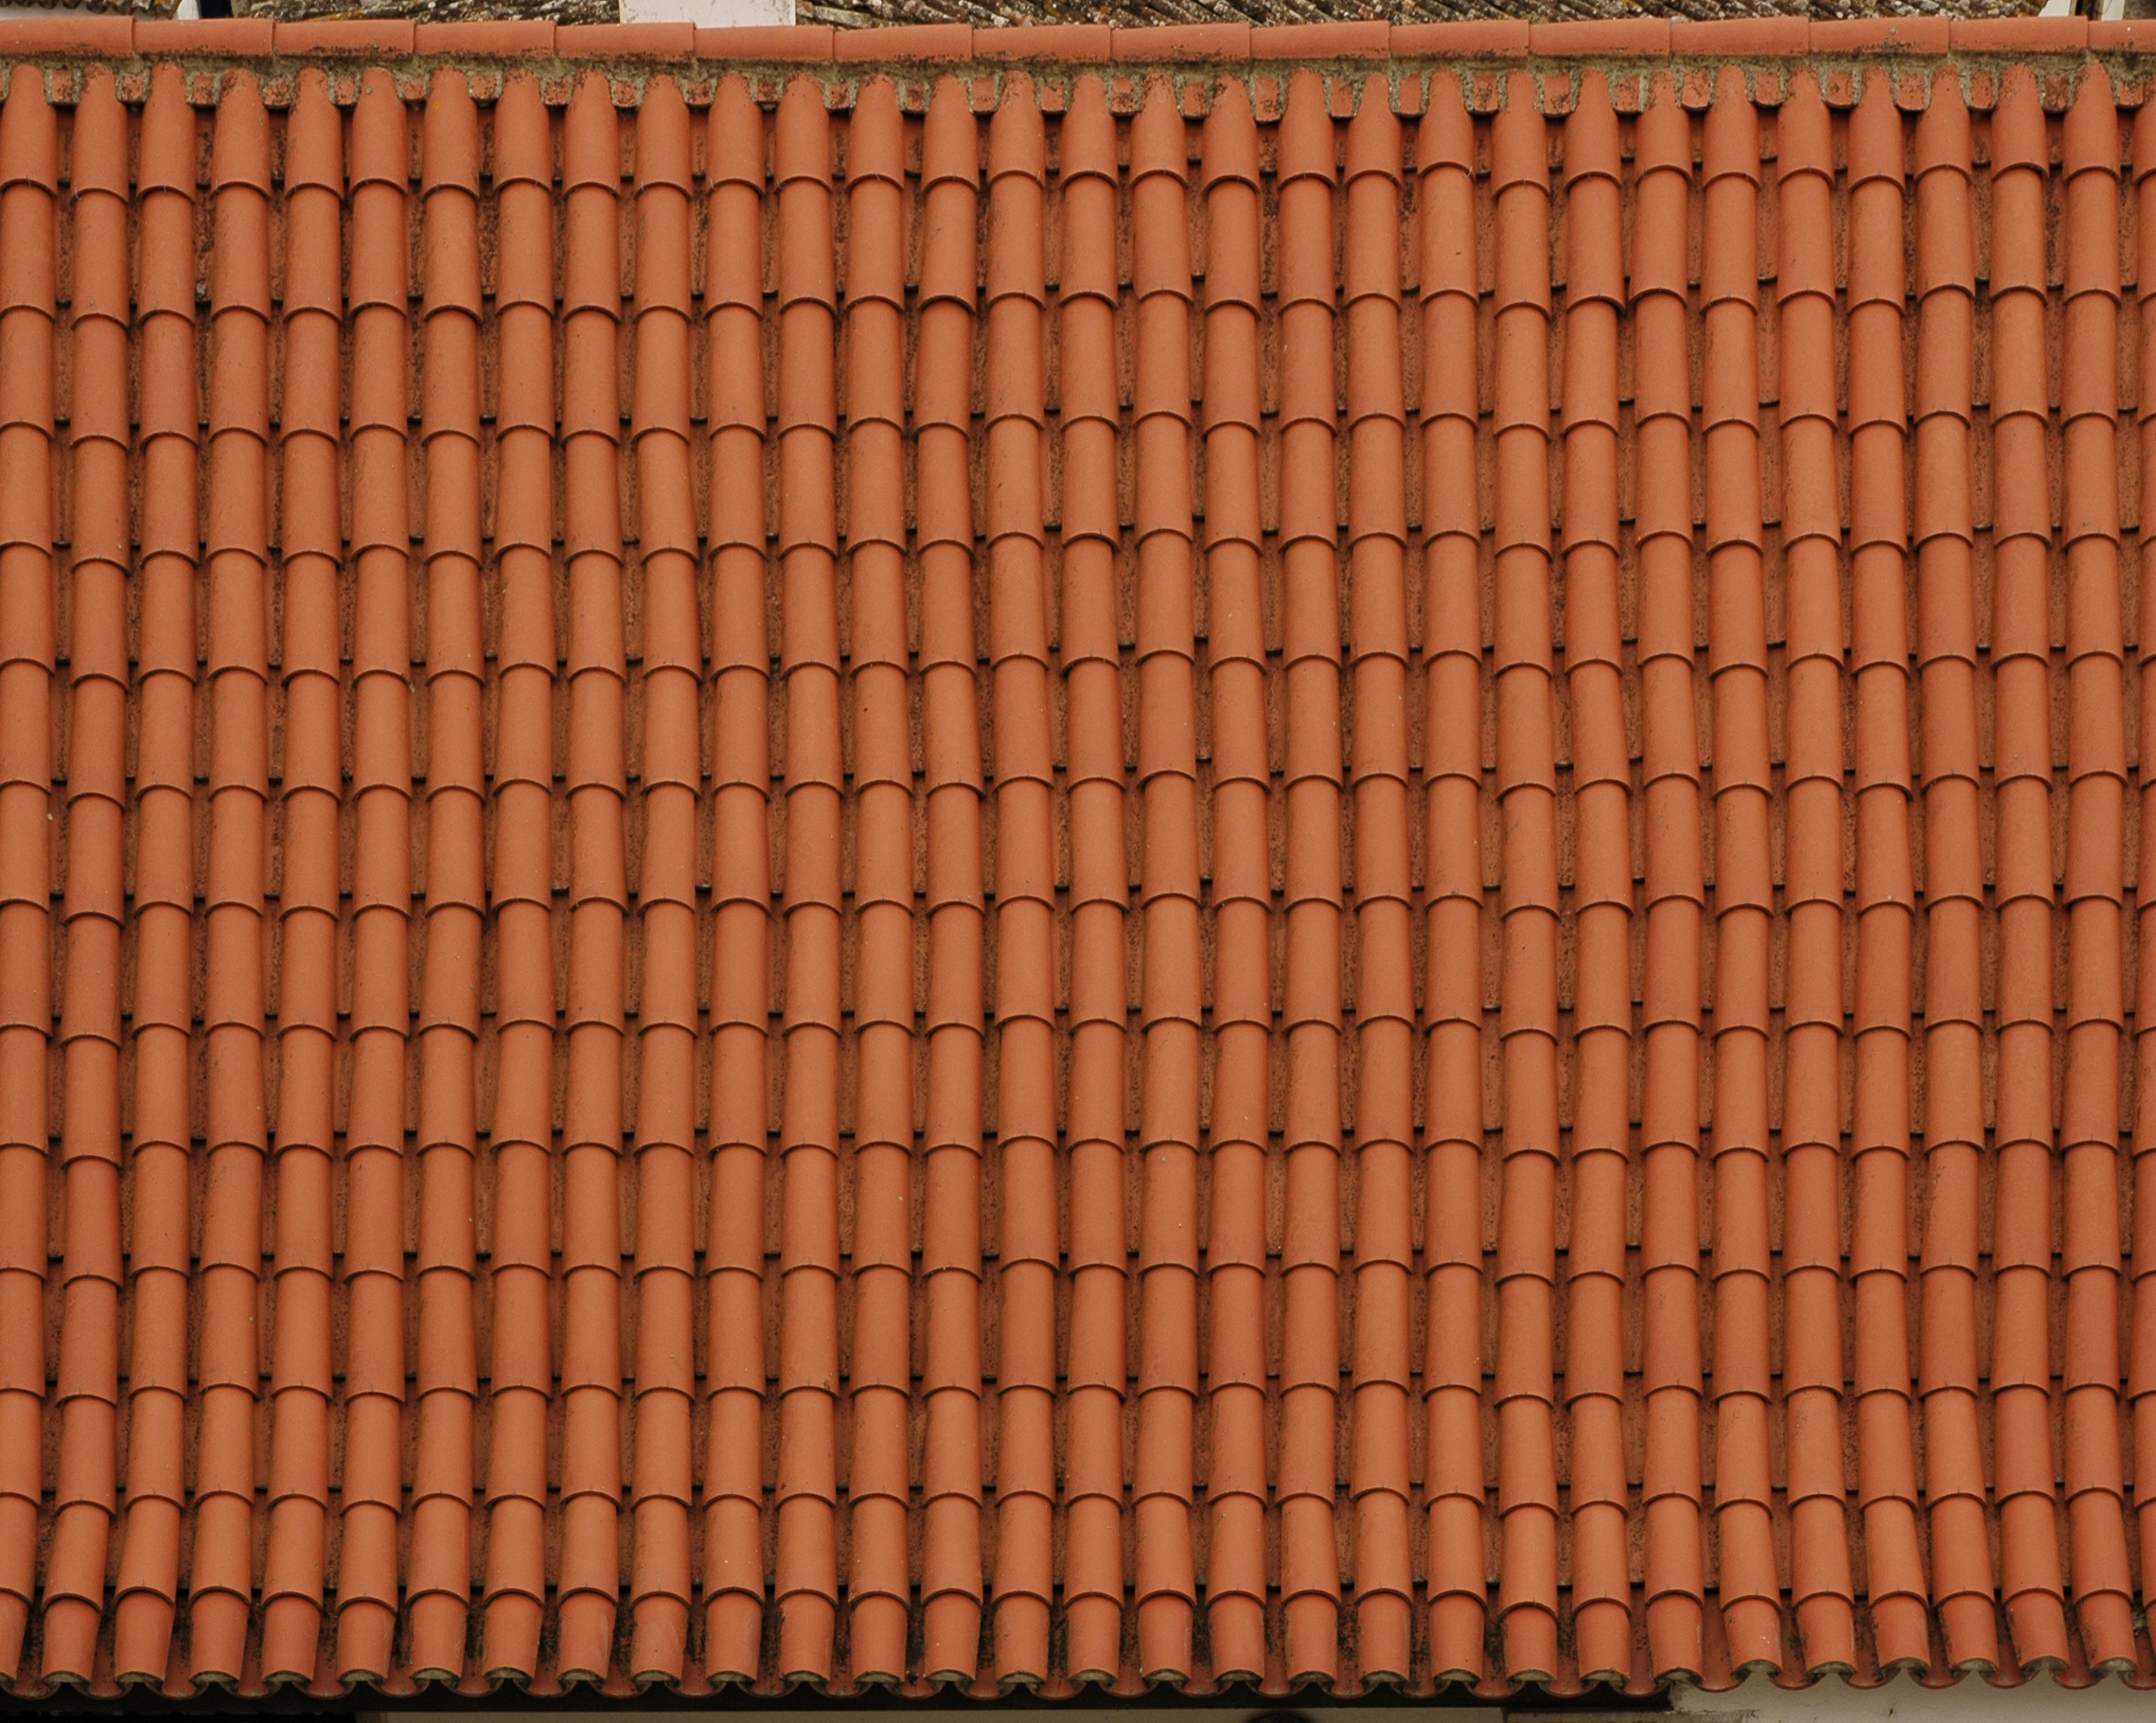 Tile Roof Background Clipart Clipground